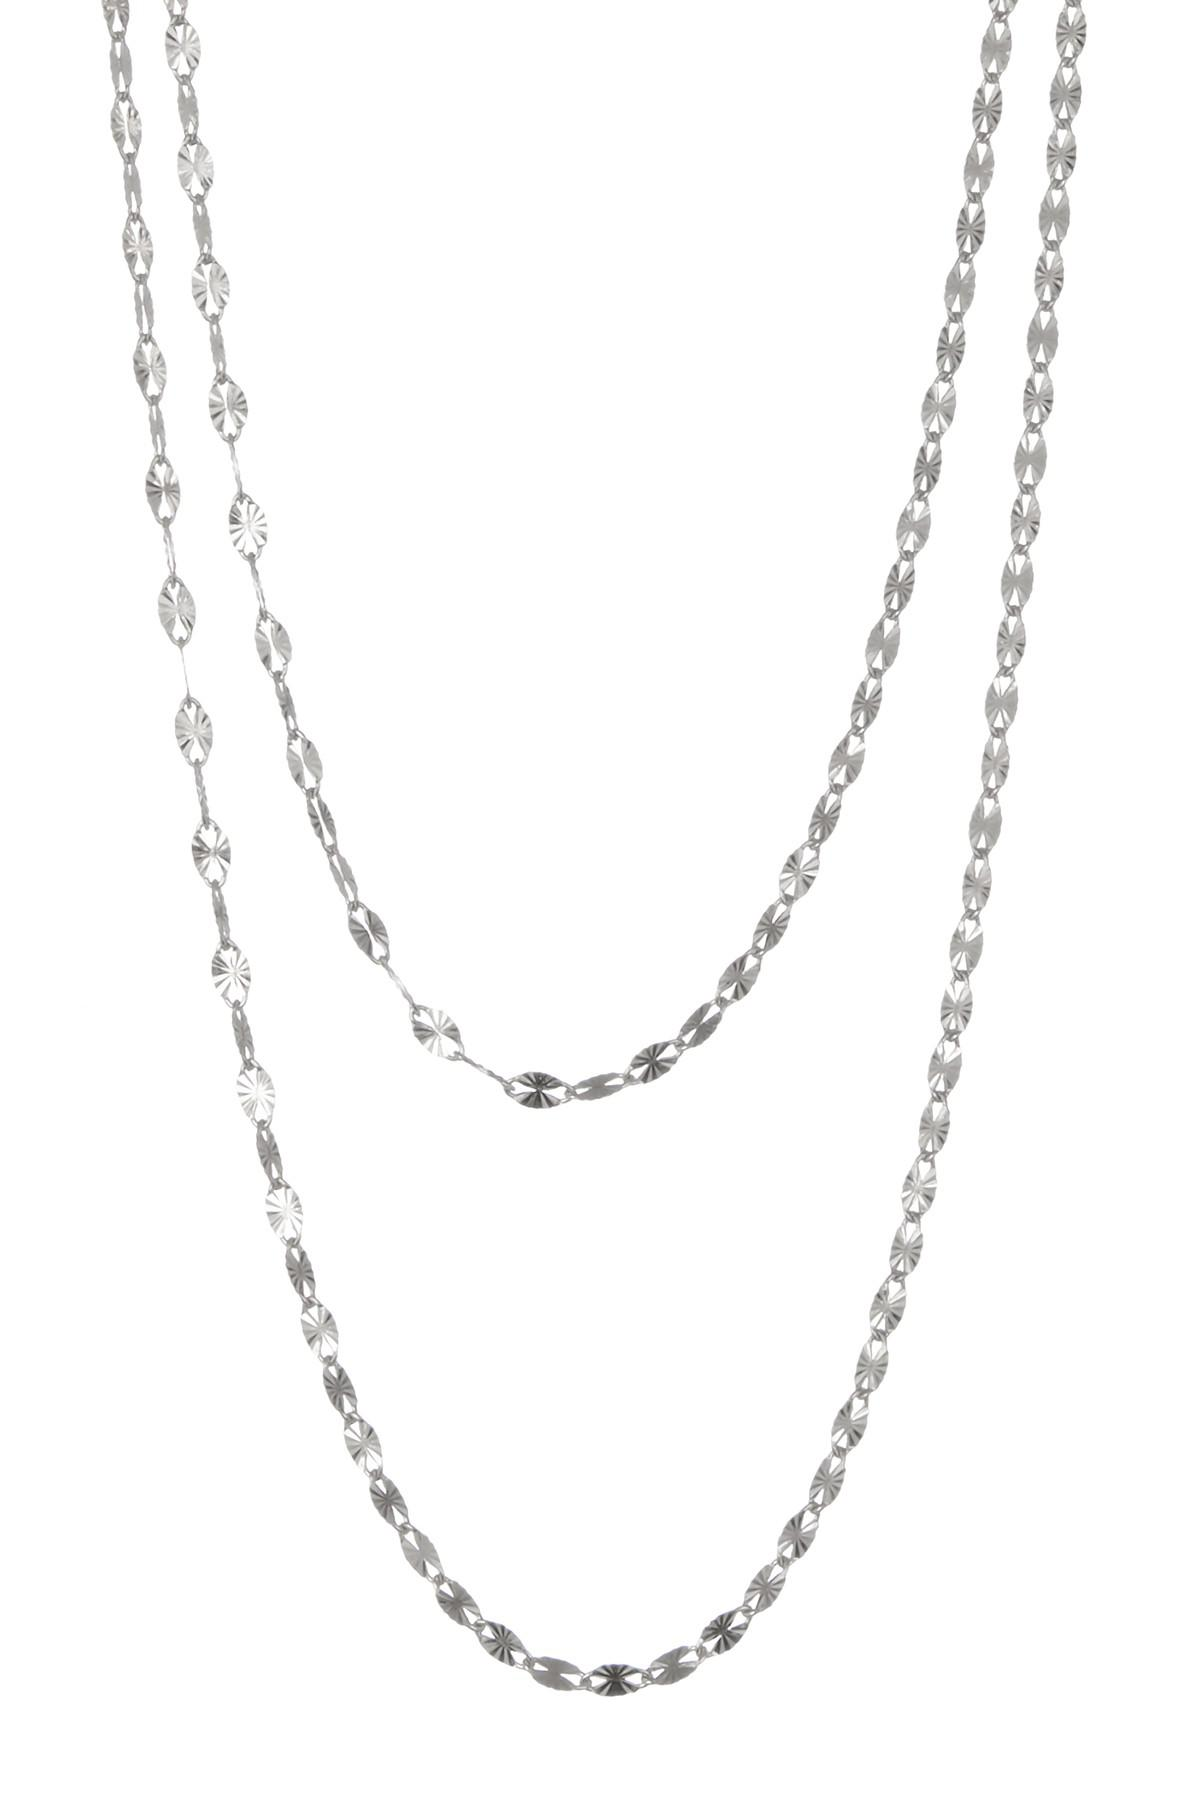 Lana Jewelry Flawless Illusion Disc Pendant Necklace in 14K White Gold 1xkqta